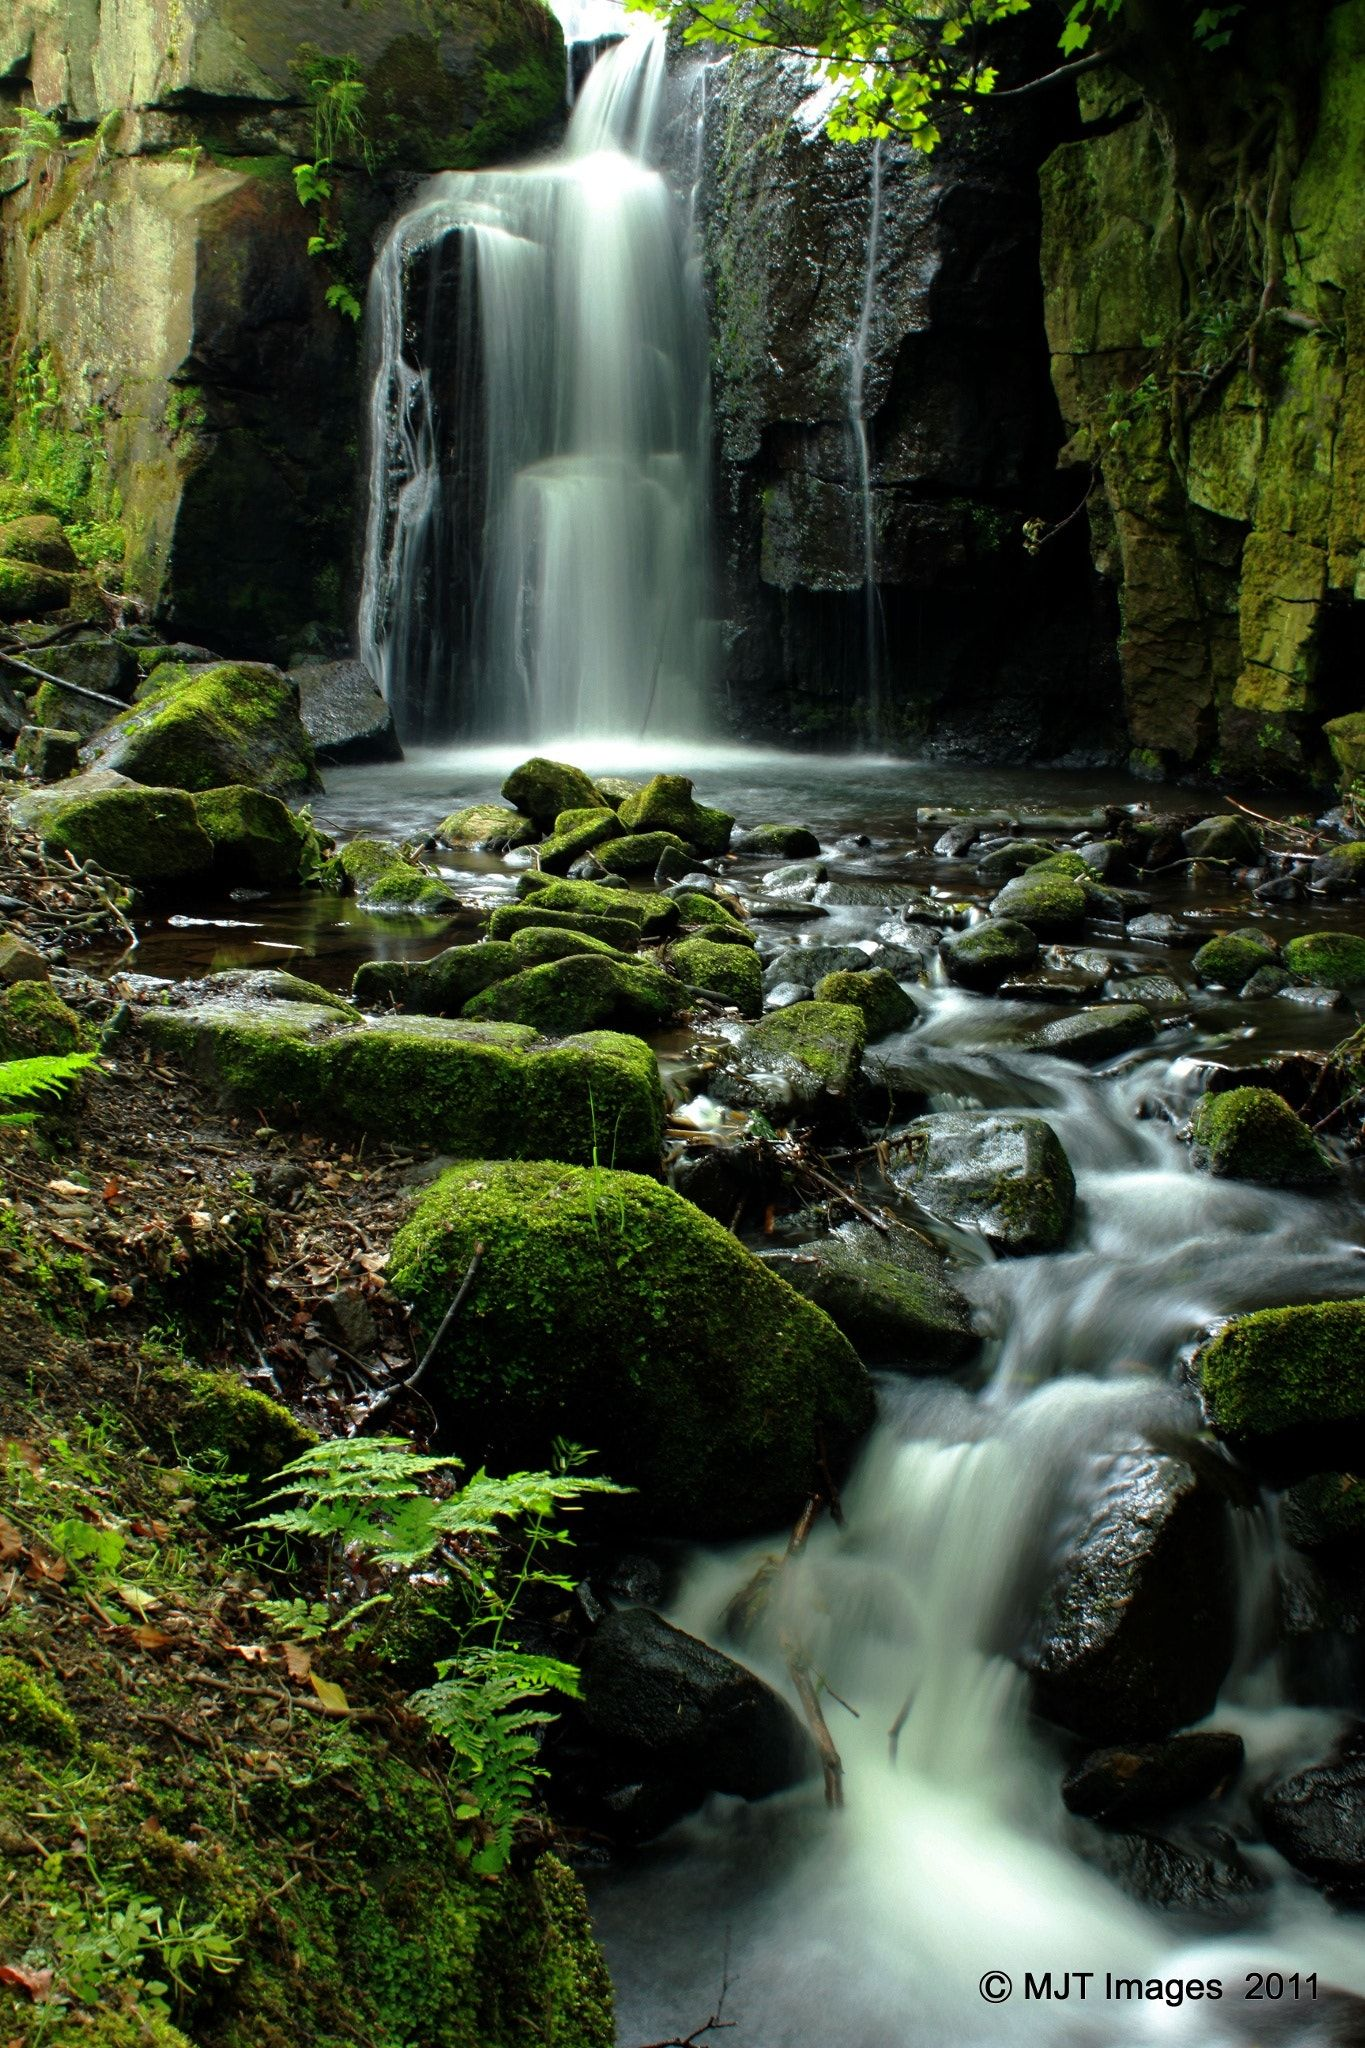 Lumsdale Falls - Taken at Lumsdake Falls, near Matlock, Derbyshire, England. landscape photography